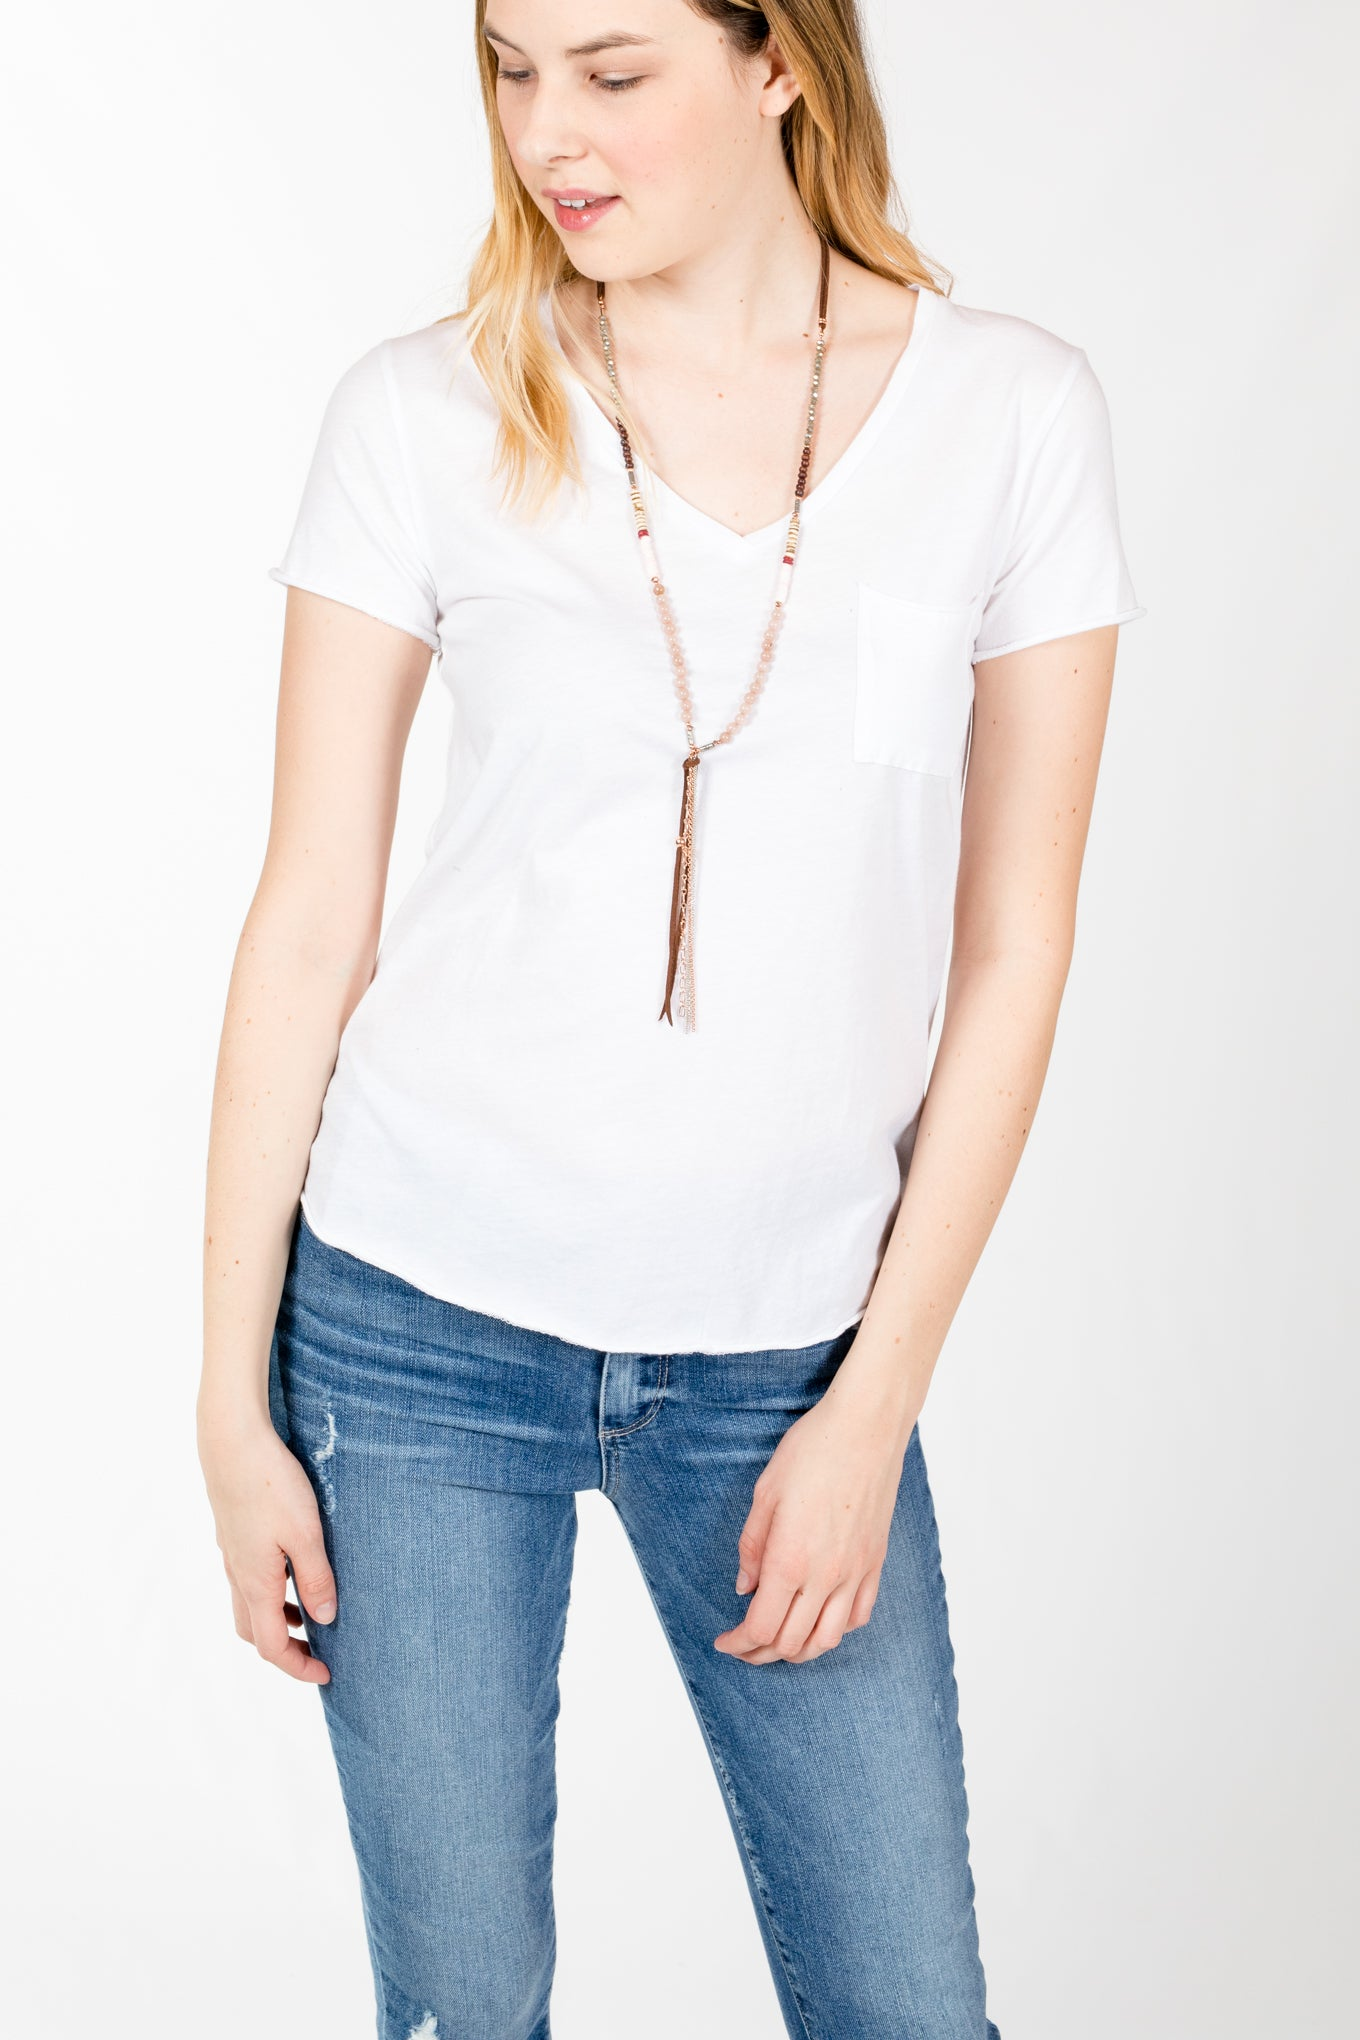 Michelle by Comune.Beverly V Top-Off White